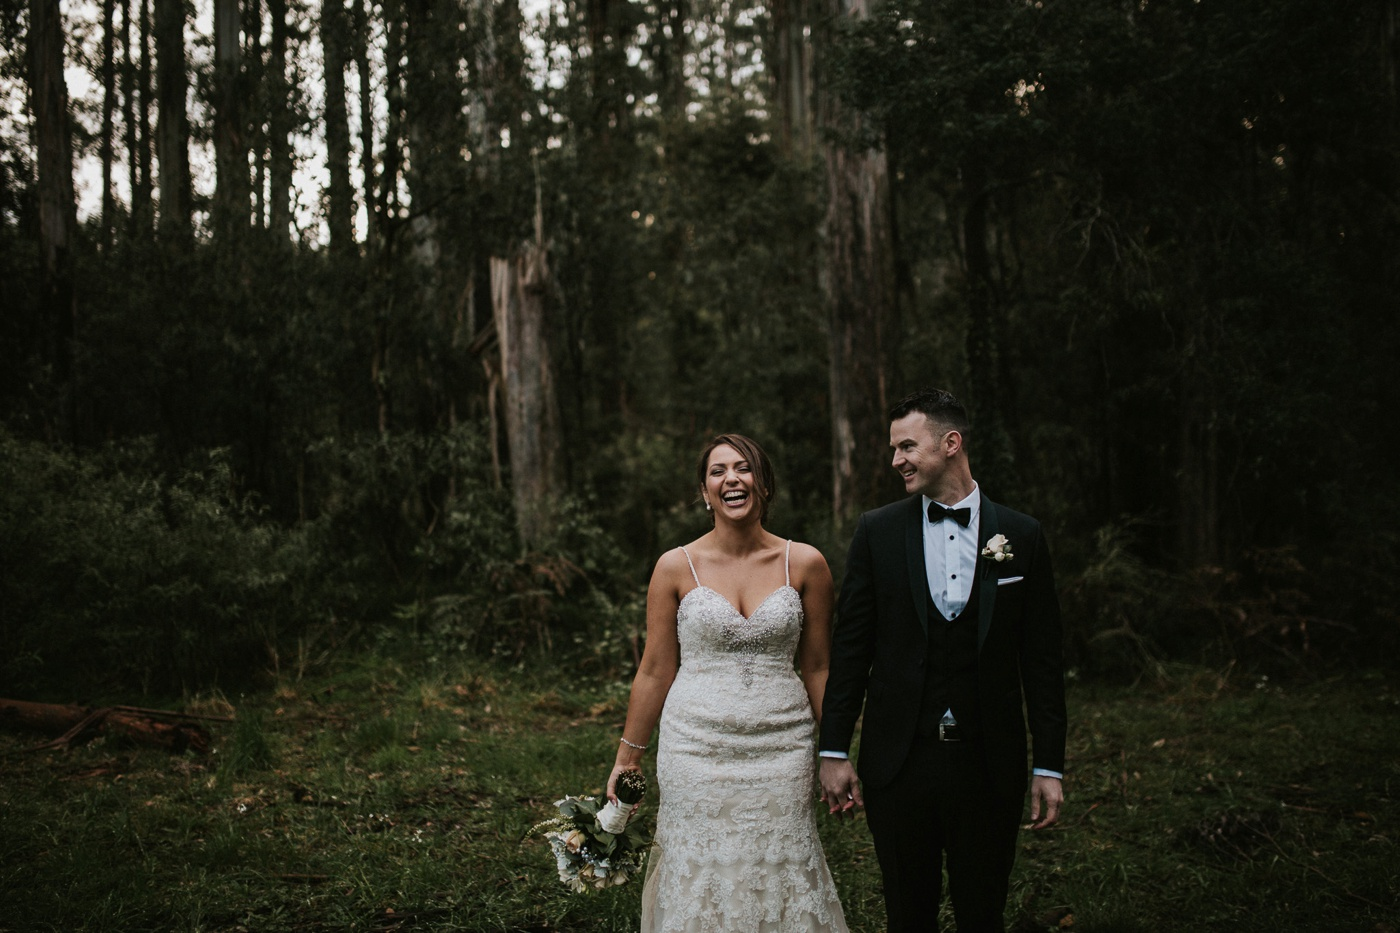 wesleybianca_dandenongs-sherbrooke-poets-lane-wedding_melbourne-quirky-fun-candid-wedding-photography_53